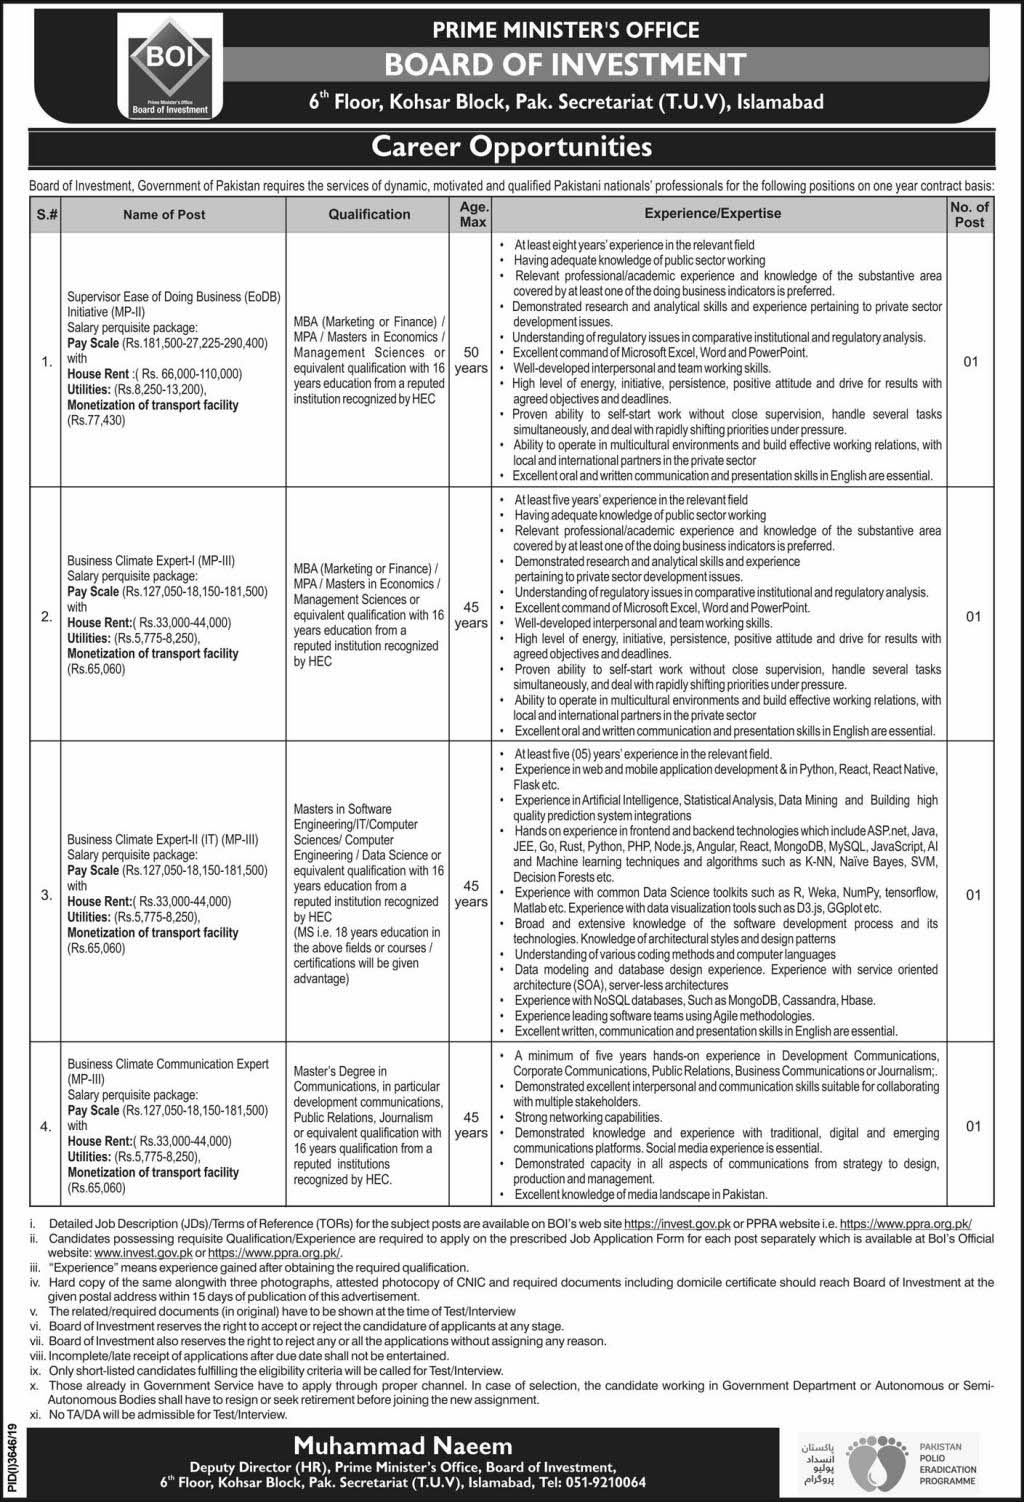 Prime Minister Office Islamabad Jobs 2020